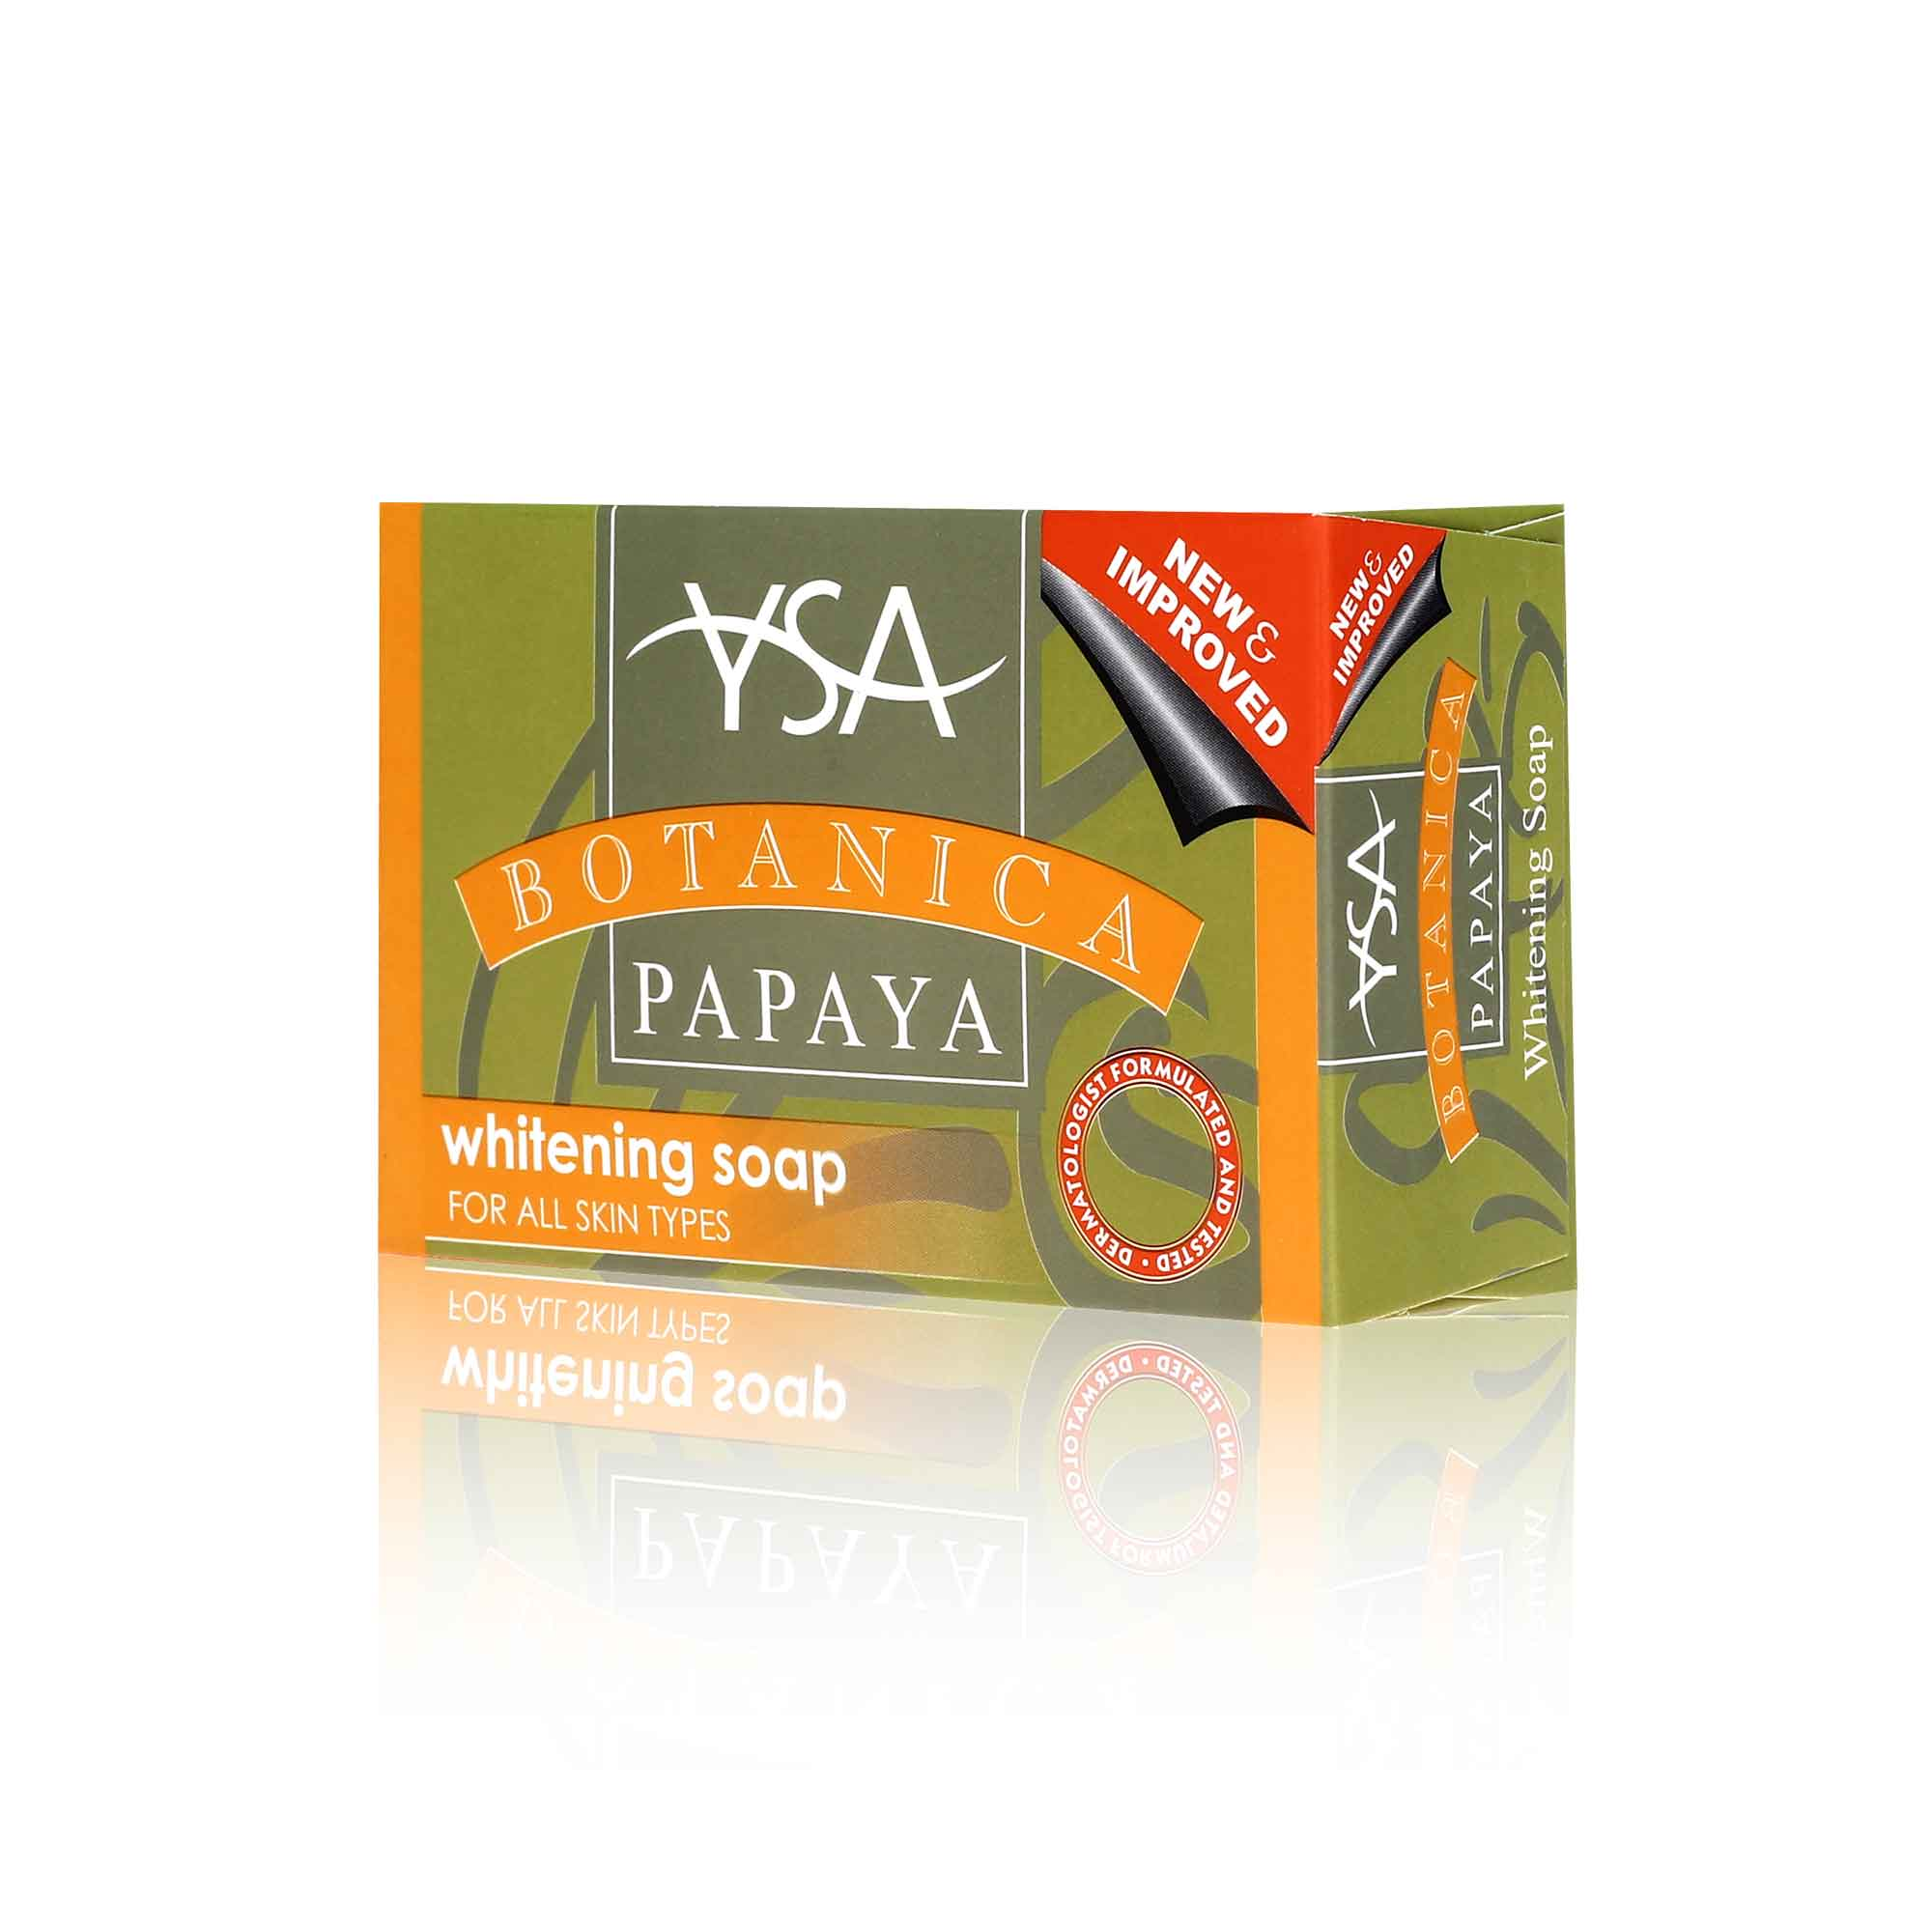 Ysa	Botanica Papaya Soap 135g